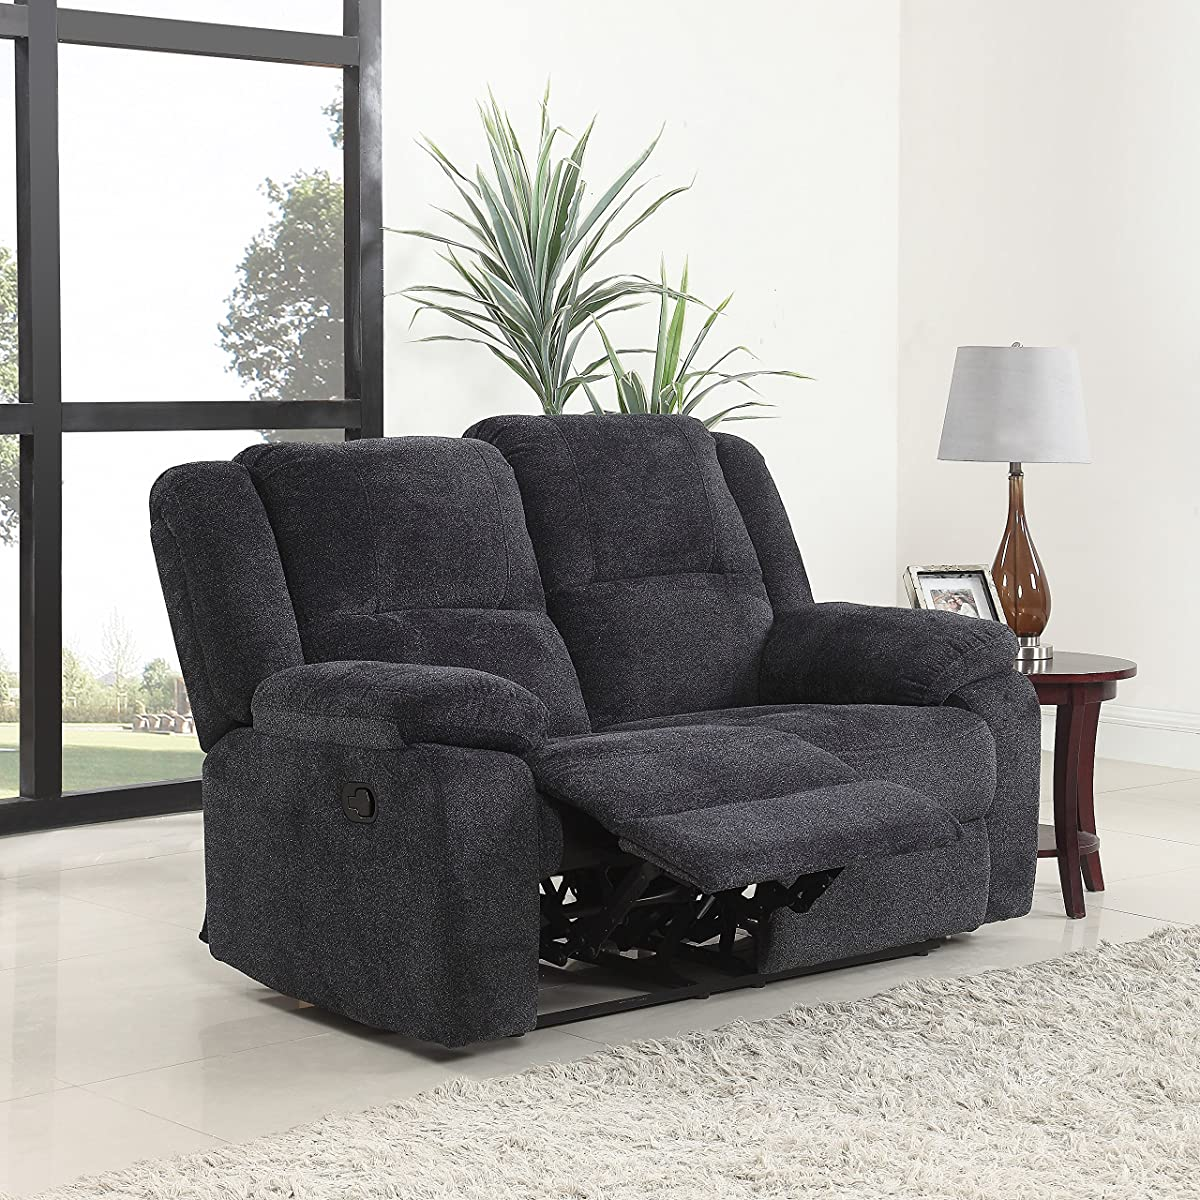 Traditional Classic Living Room Microfiber Double Recliner Loveseat (Dark Grey)